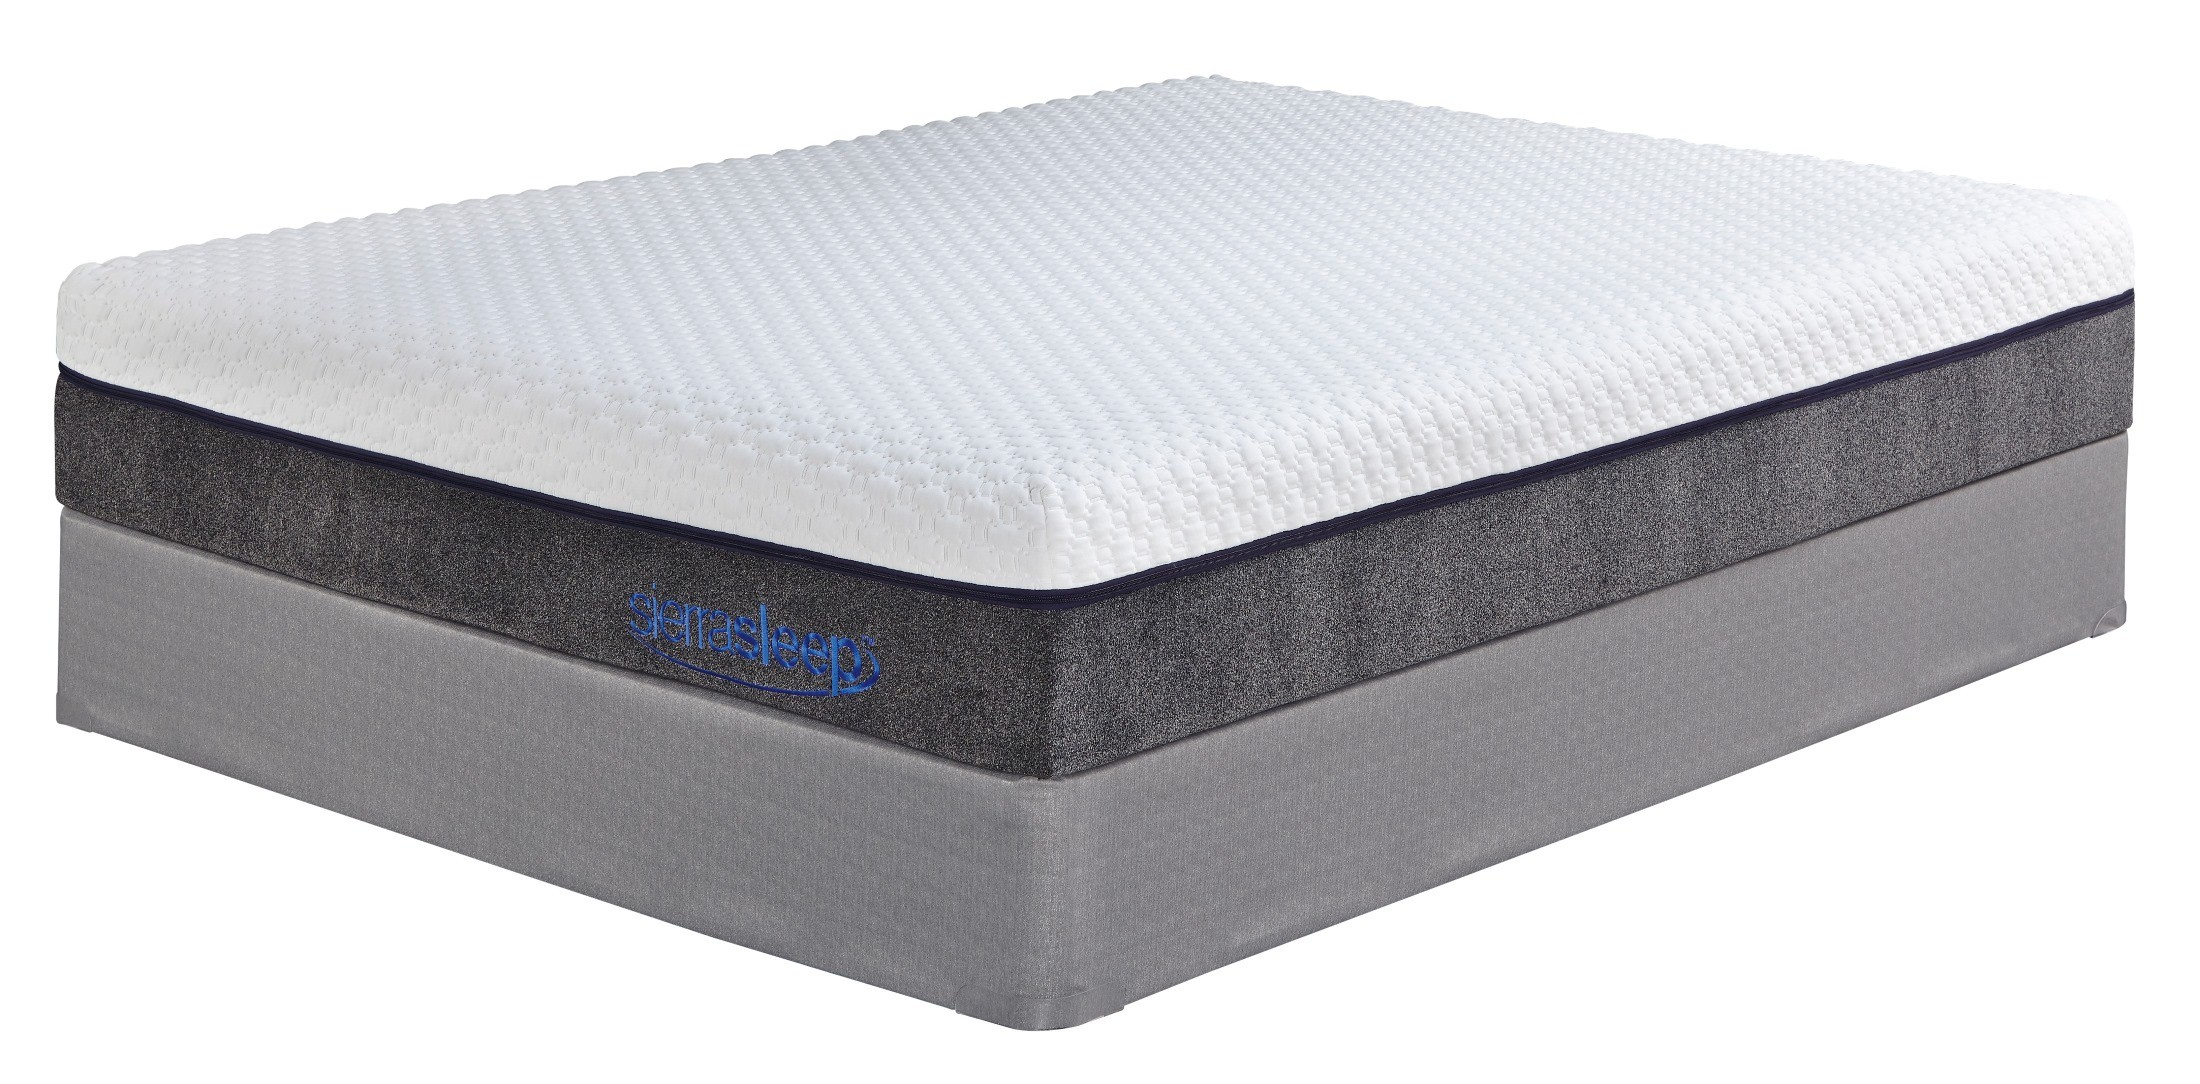 11 Quot Import Innerspring White King Mattress With Foundation